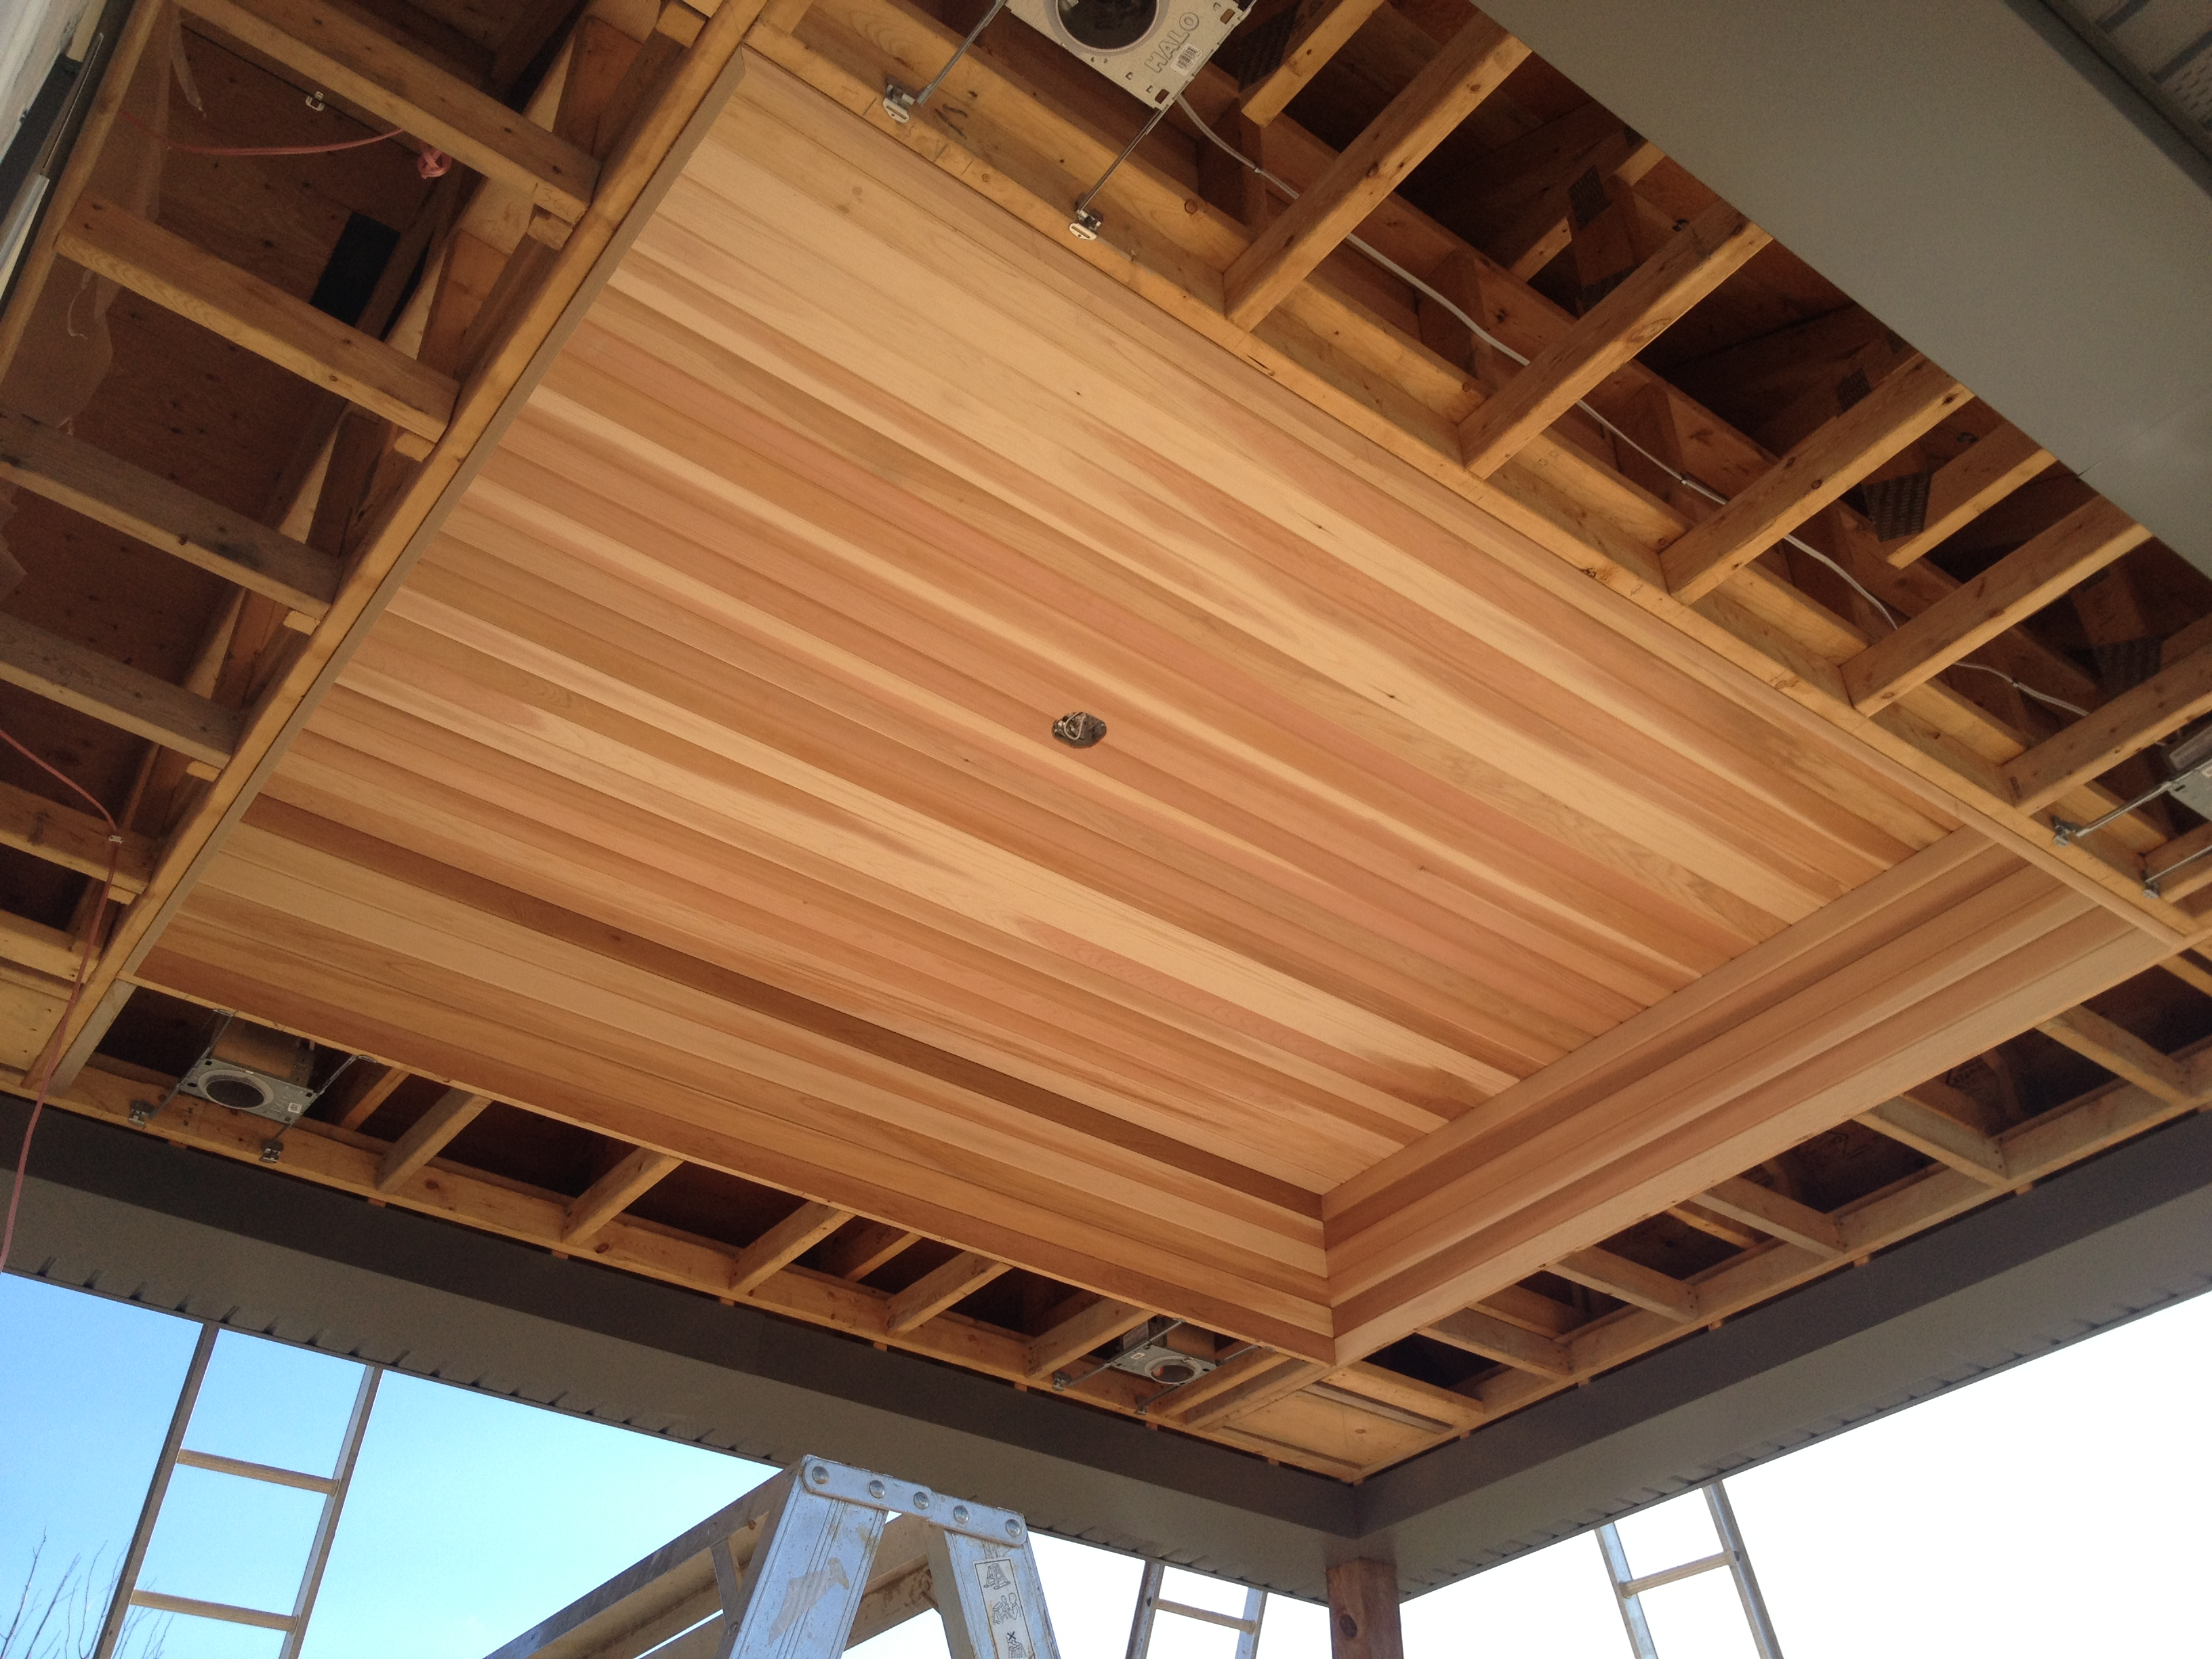 Superb Beautiful Detailed Cedar Ceiling Was Installed To Give This Outdoor Living  Space A Warm Feel To Overlook The Vineyard Setting.